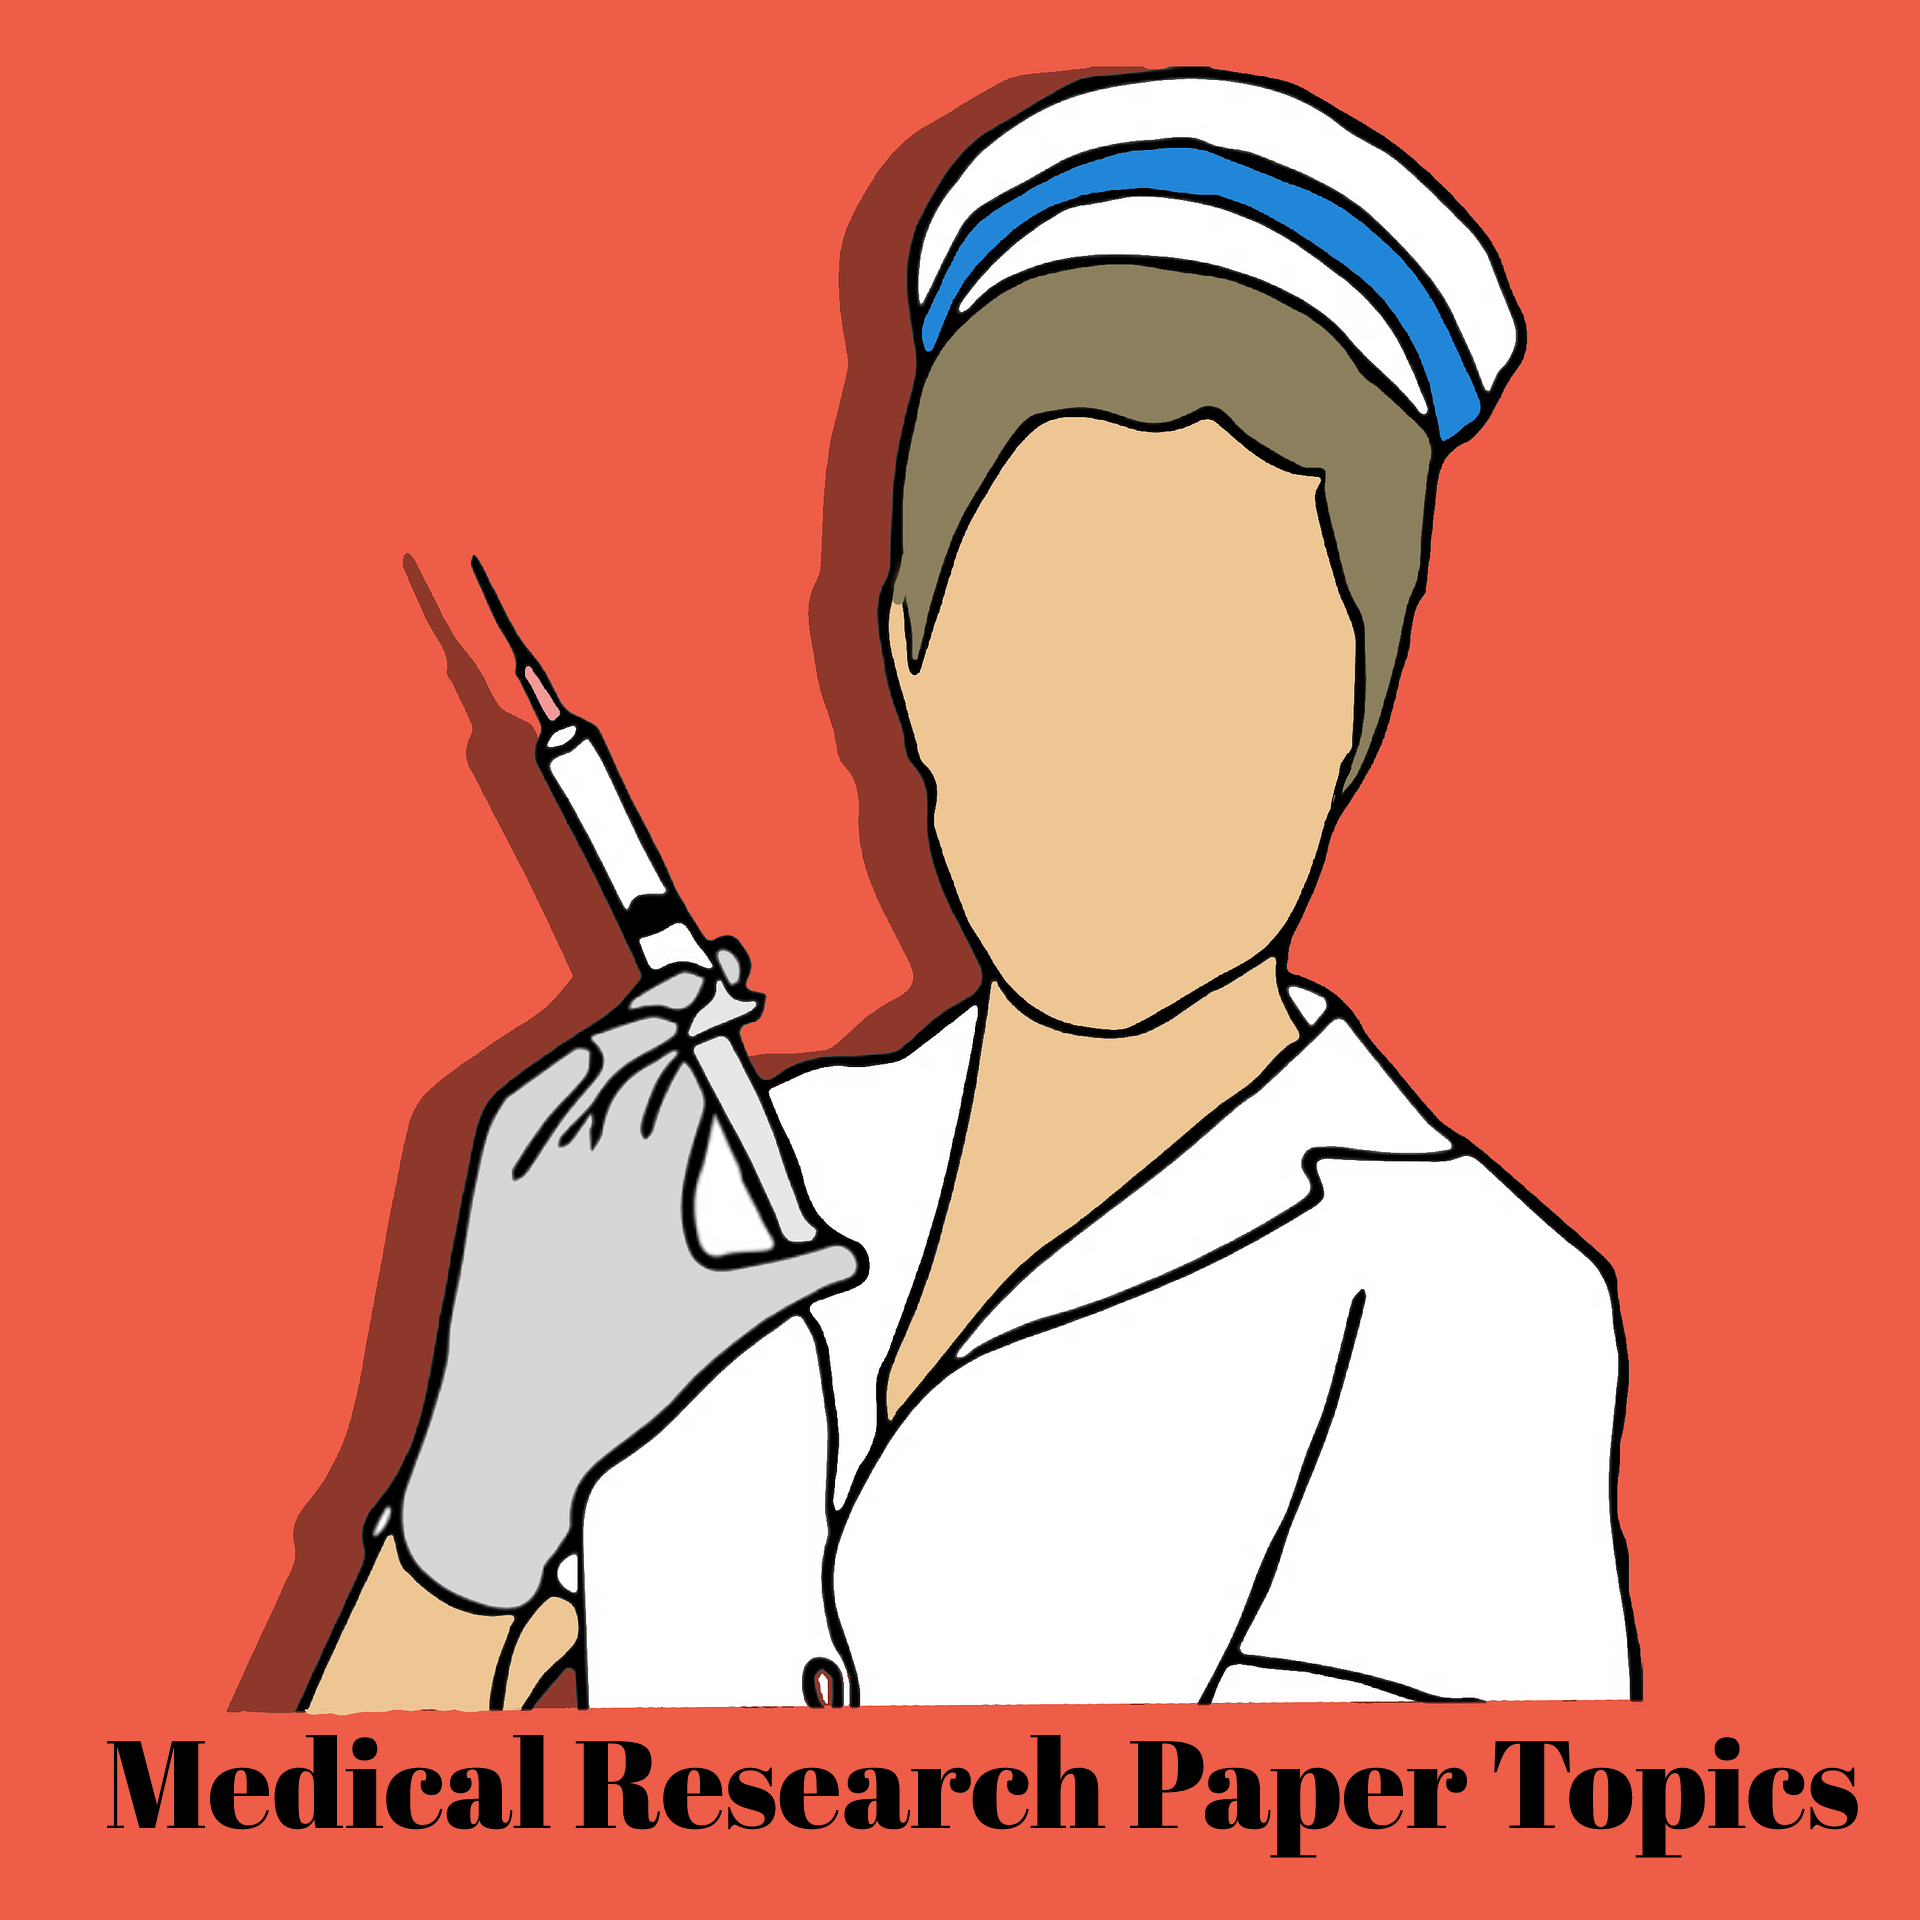 Best Medical Research Paper Topics for Students